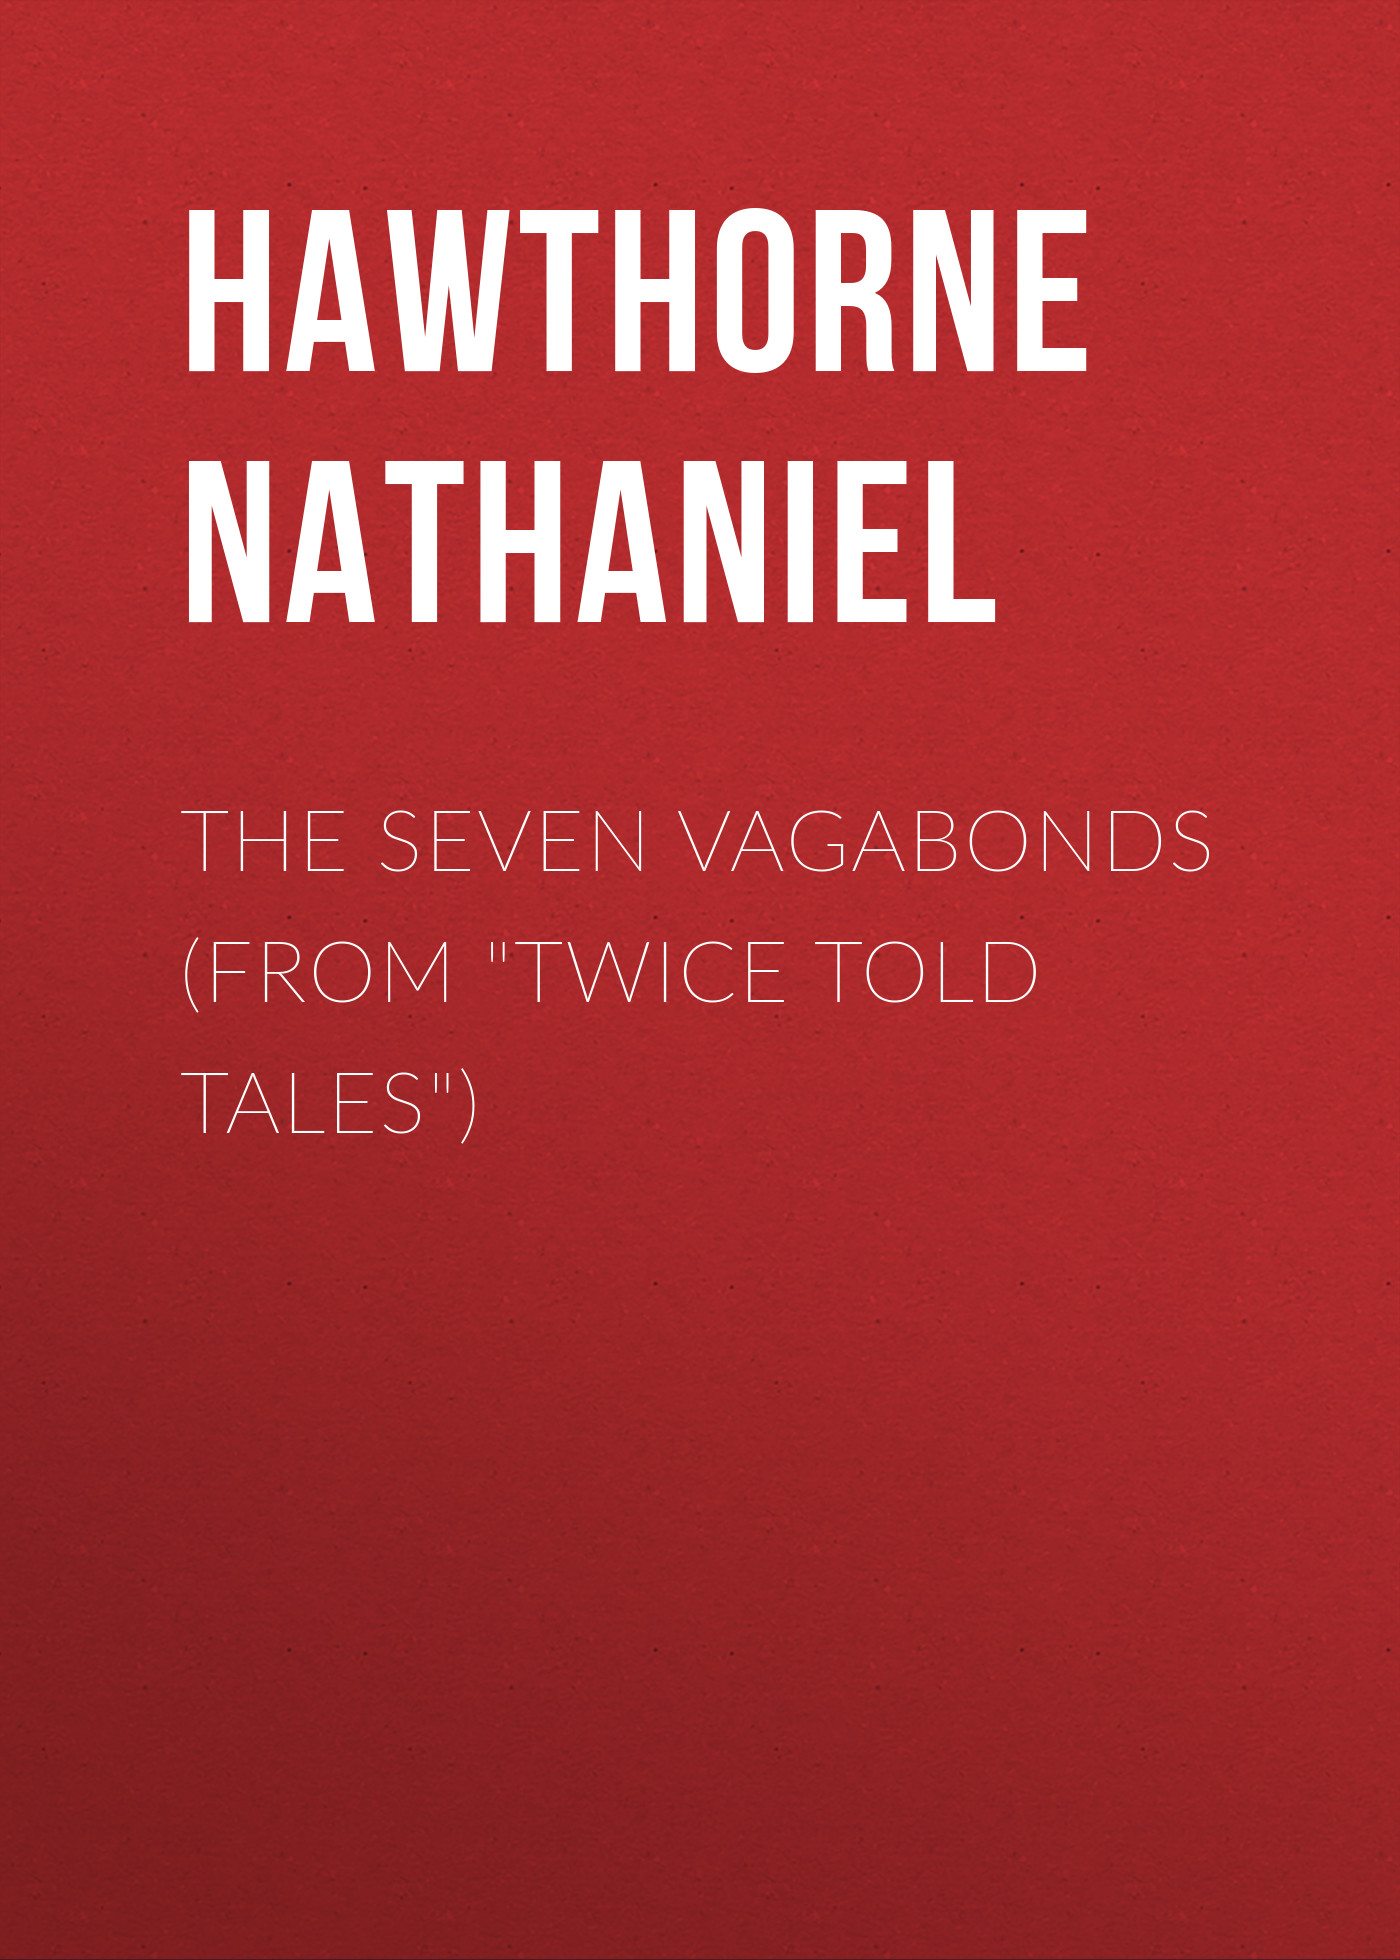 Hawthorne Nathaniel The Seven Vagabonds (From Twice Told Tales) hawthorne nathaniel the threefold destiny from twice told tales